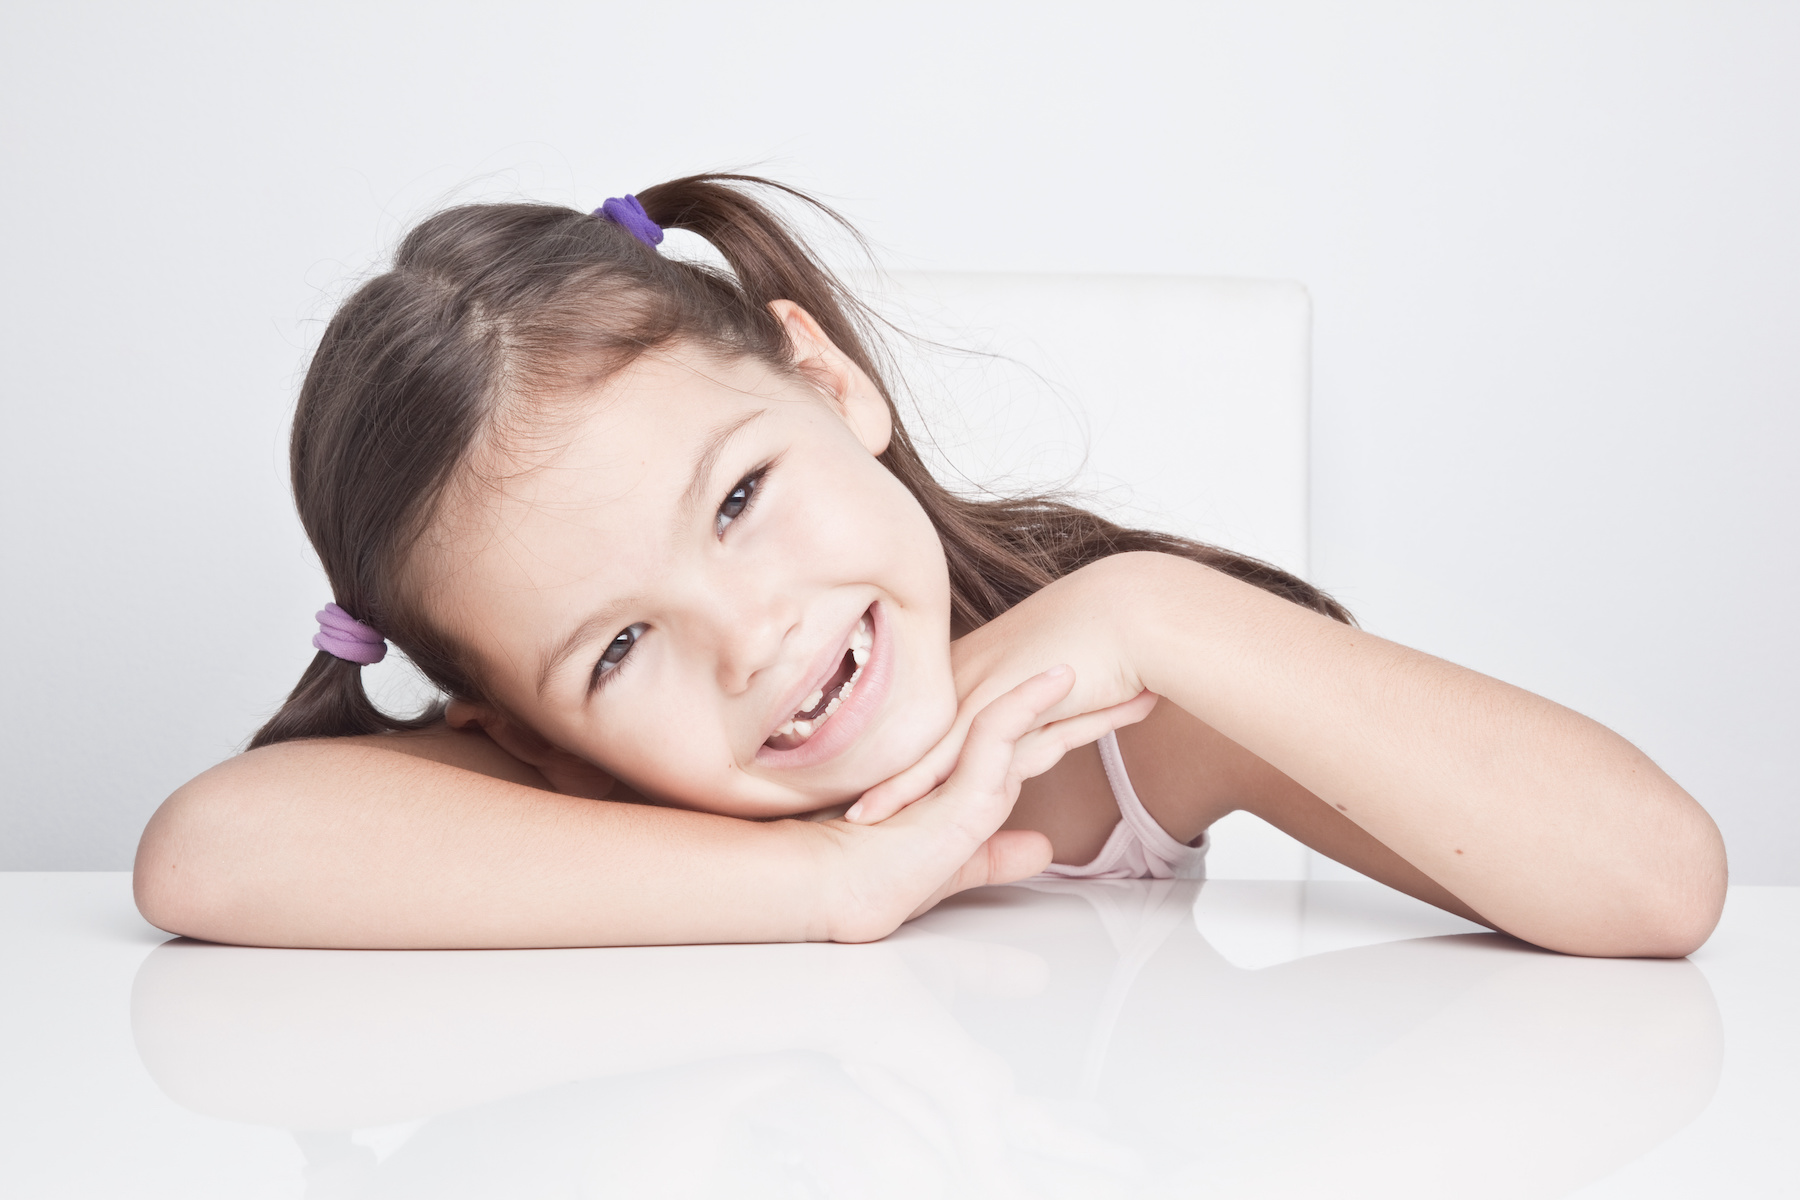 Pediatric Dentist Vs. Family Dentist – What's The Difference, And Does It Matter?